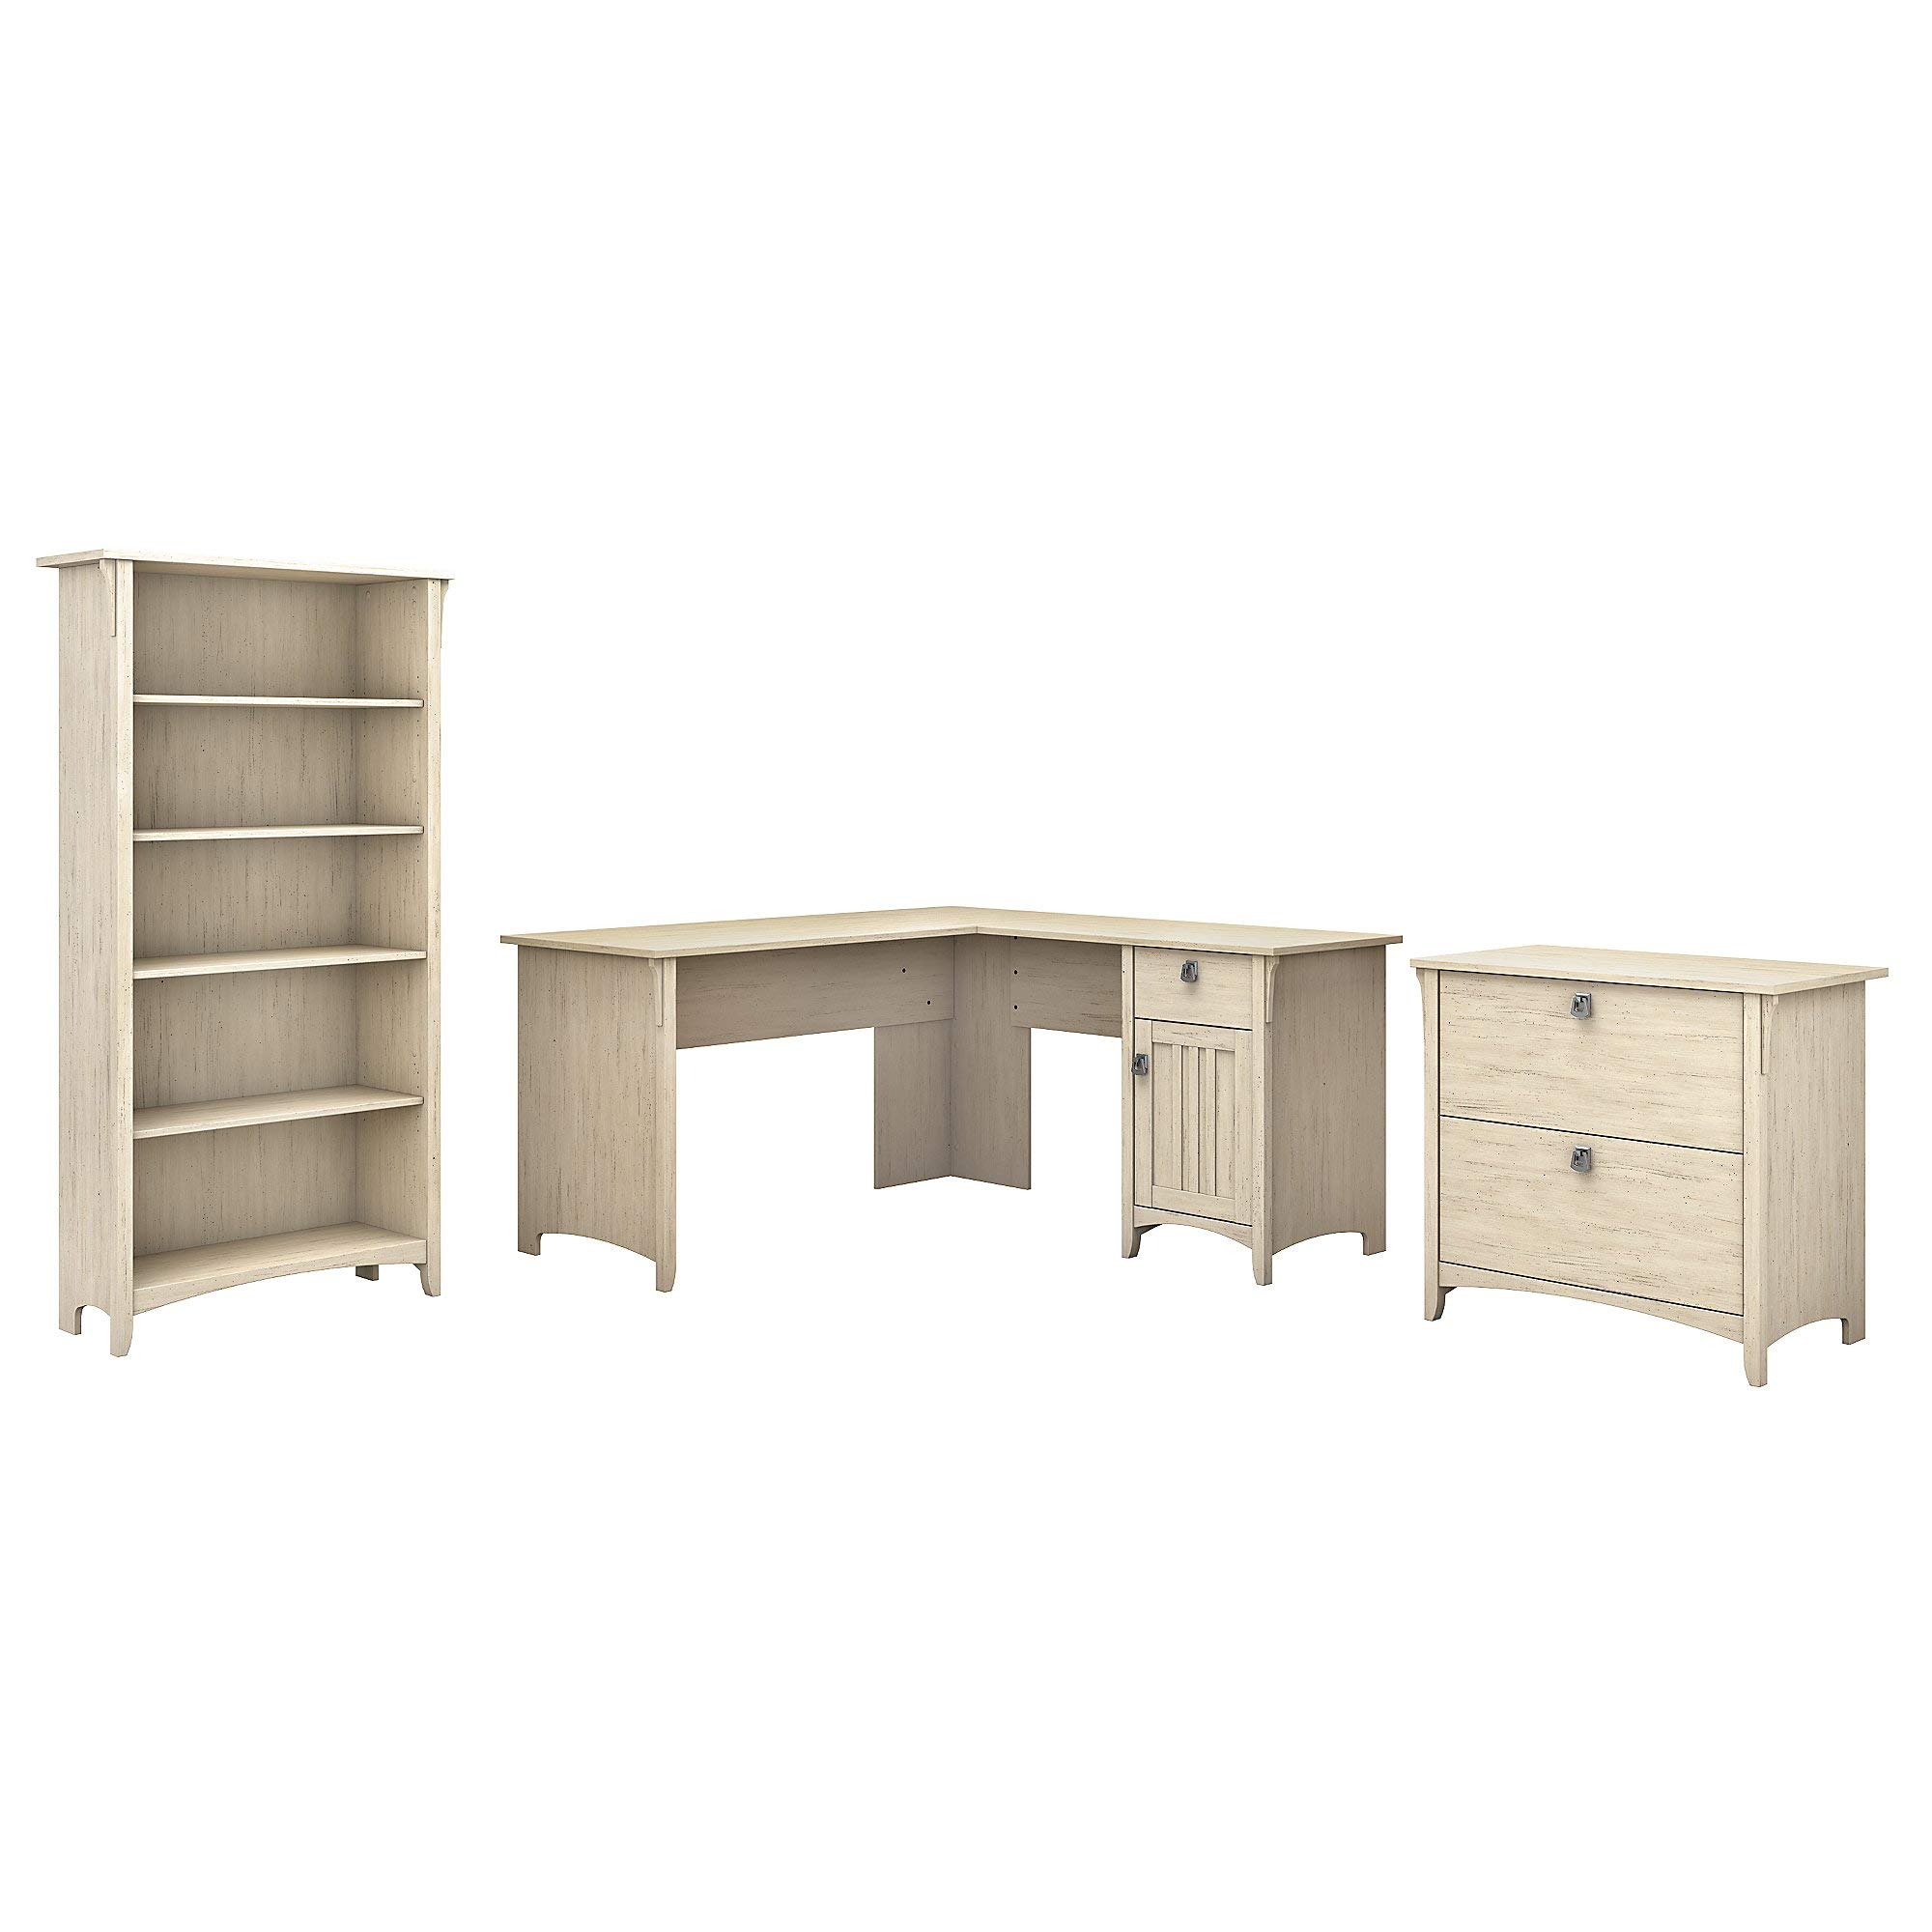 Bush Furniture Salinas 60W L Shaped Desk with Lateral File Cabinet and 5 Shelf Bookcase in Antique White by Bush Furniture